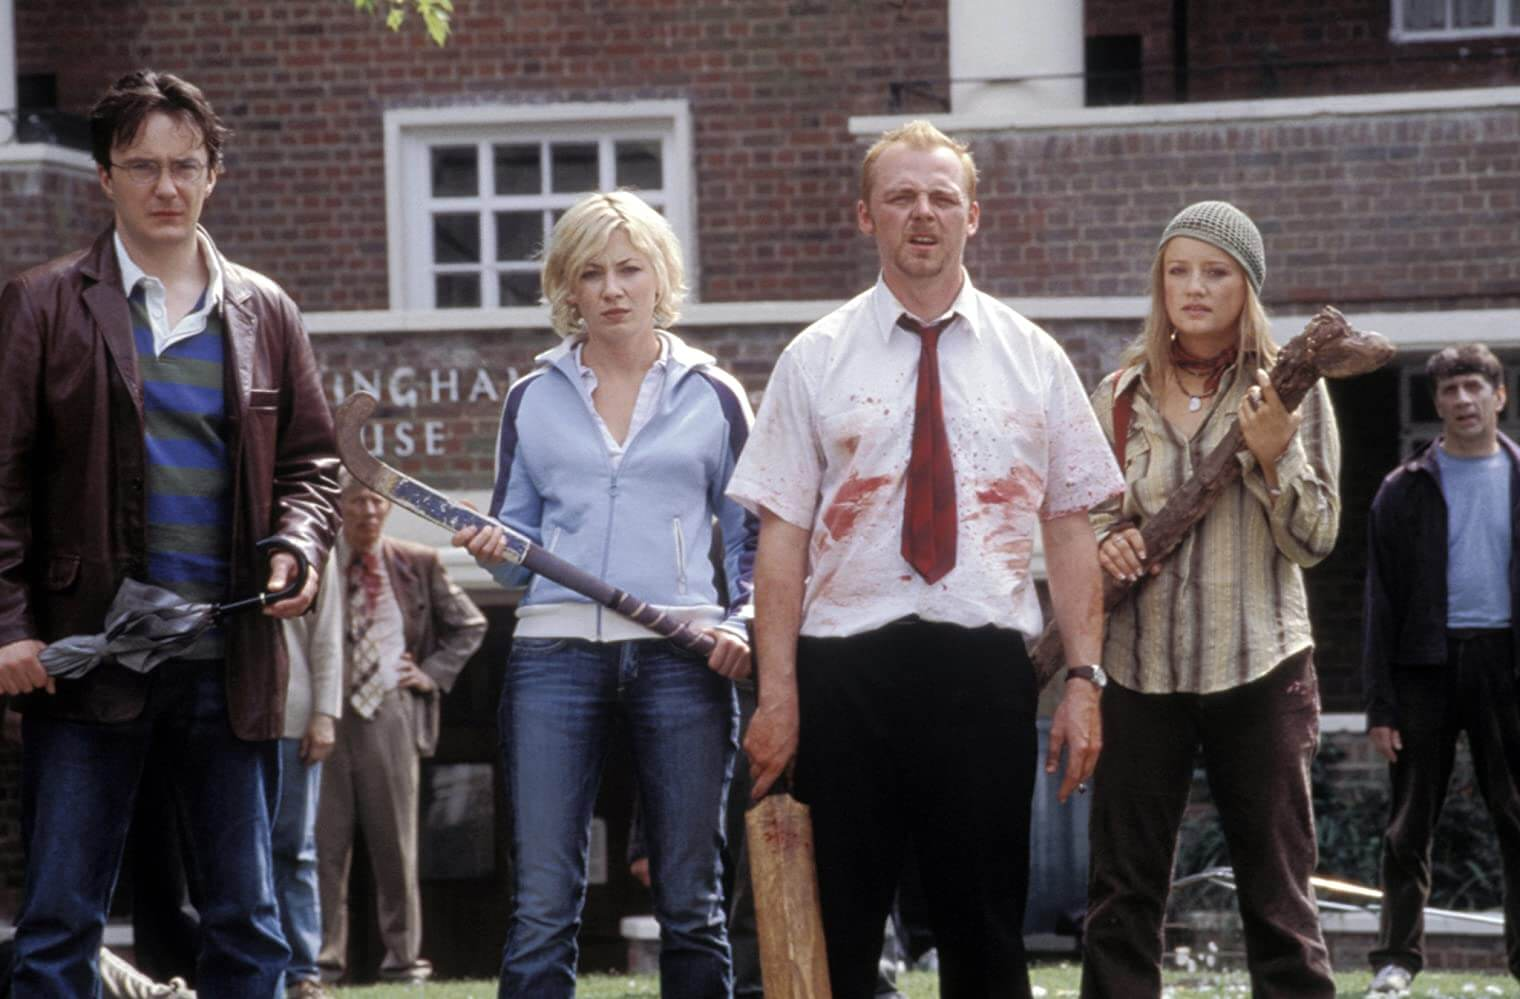 Top 10 Old School Zombie Movies: Zombies Who Follow George A. Romero's Rules